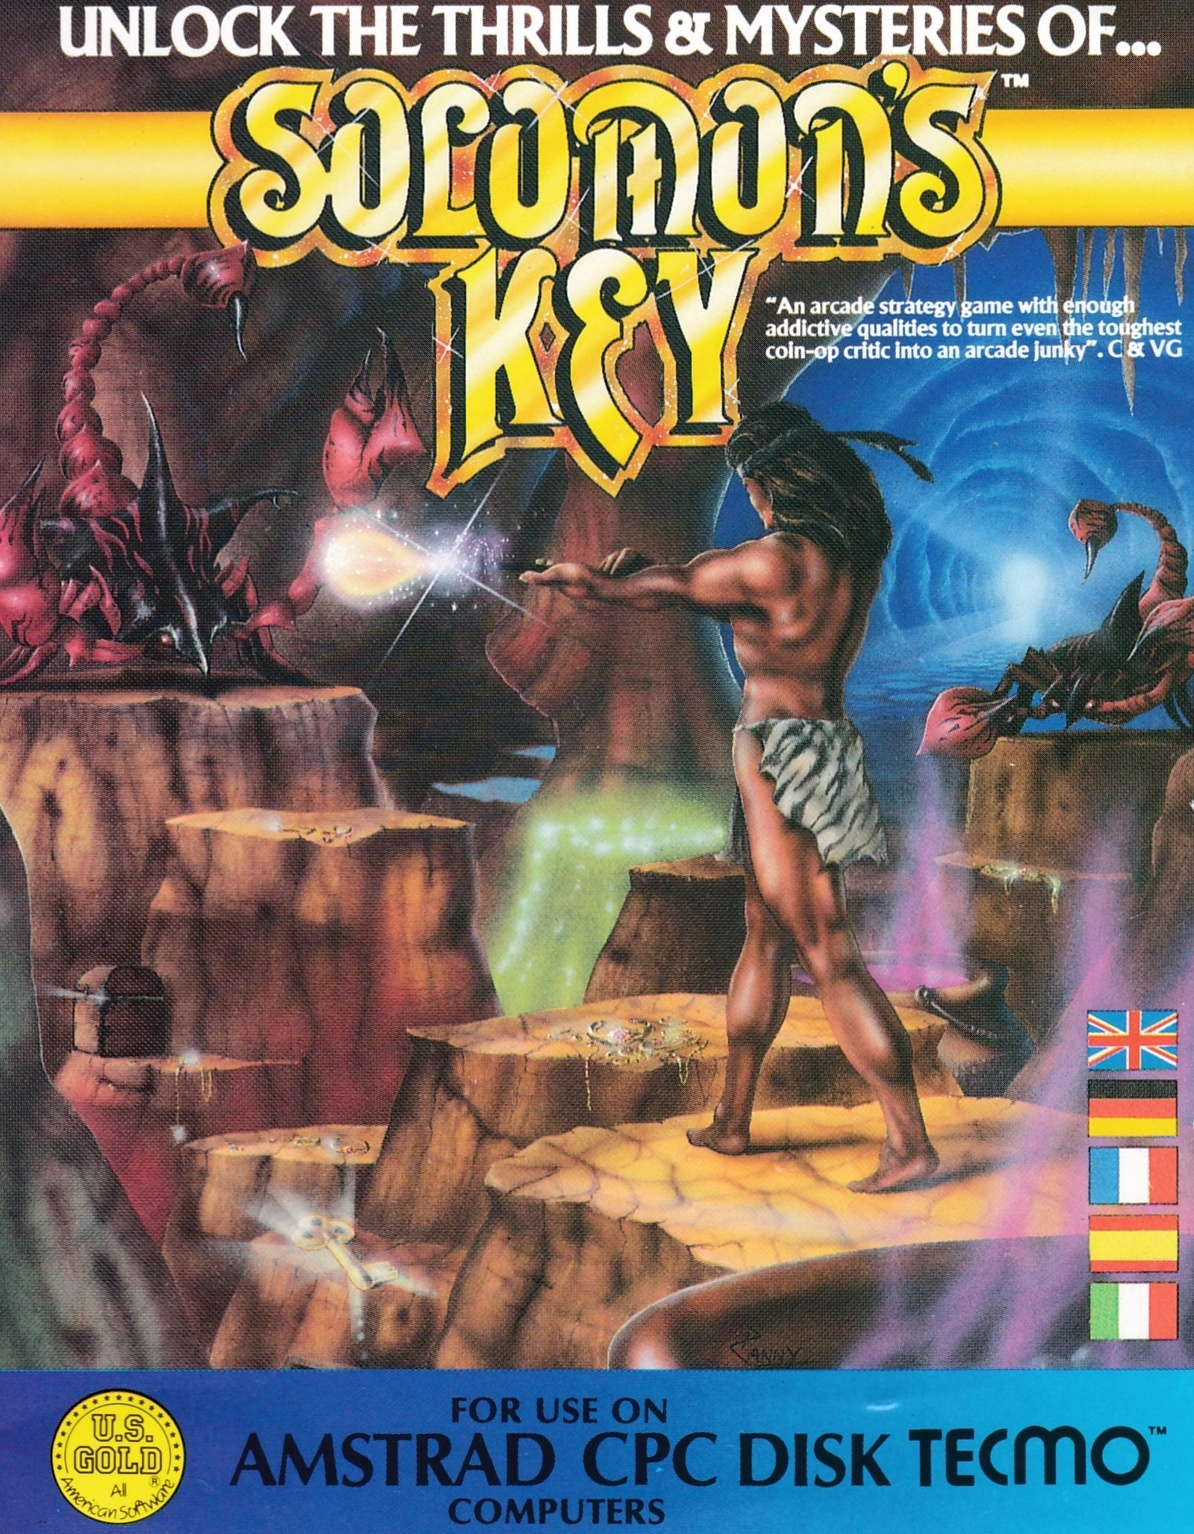 cover of the Amstrad CPC game Solomon's Key  by GameBase CPC